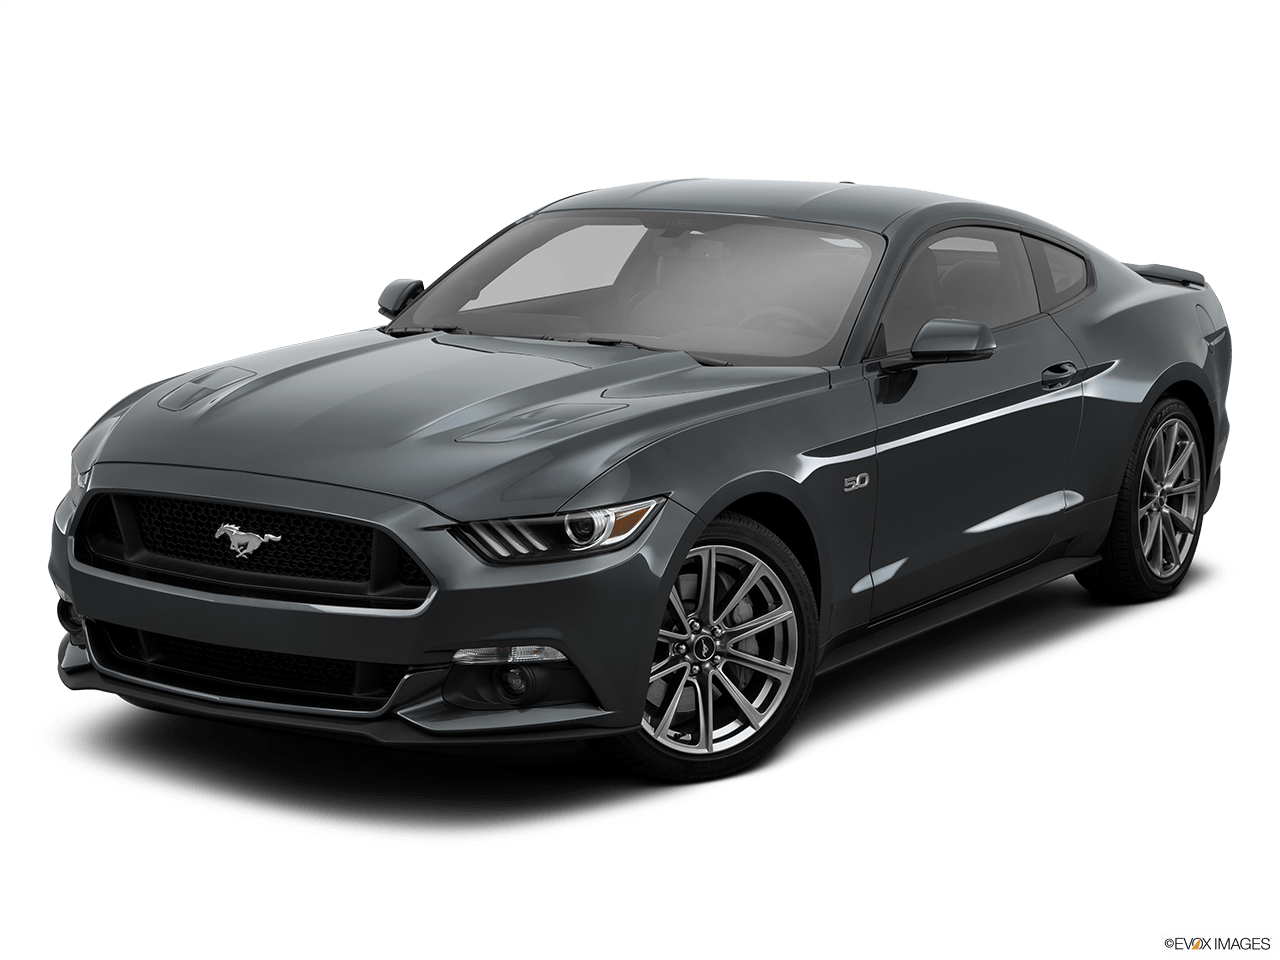 Ford Mustang Grey Transparent Png Stickpng